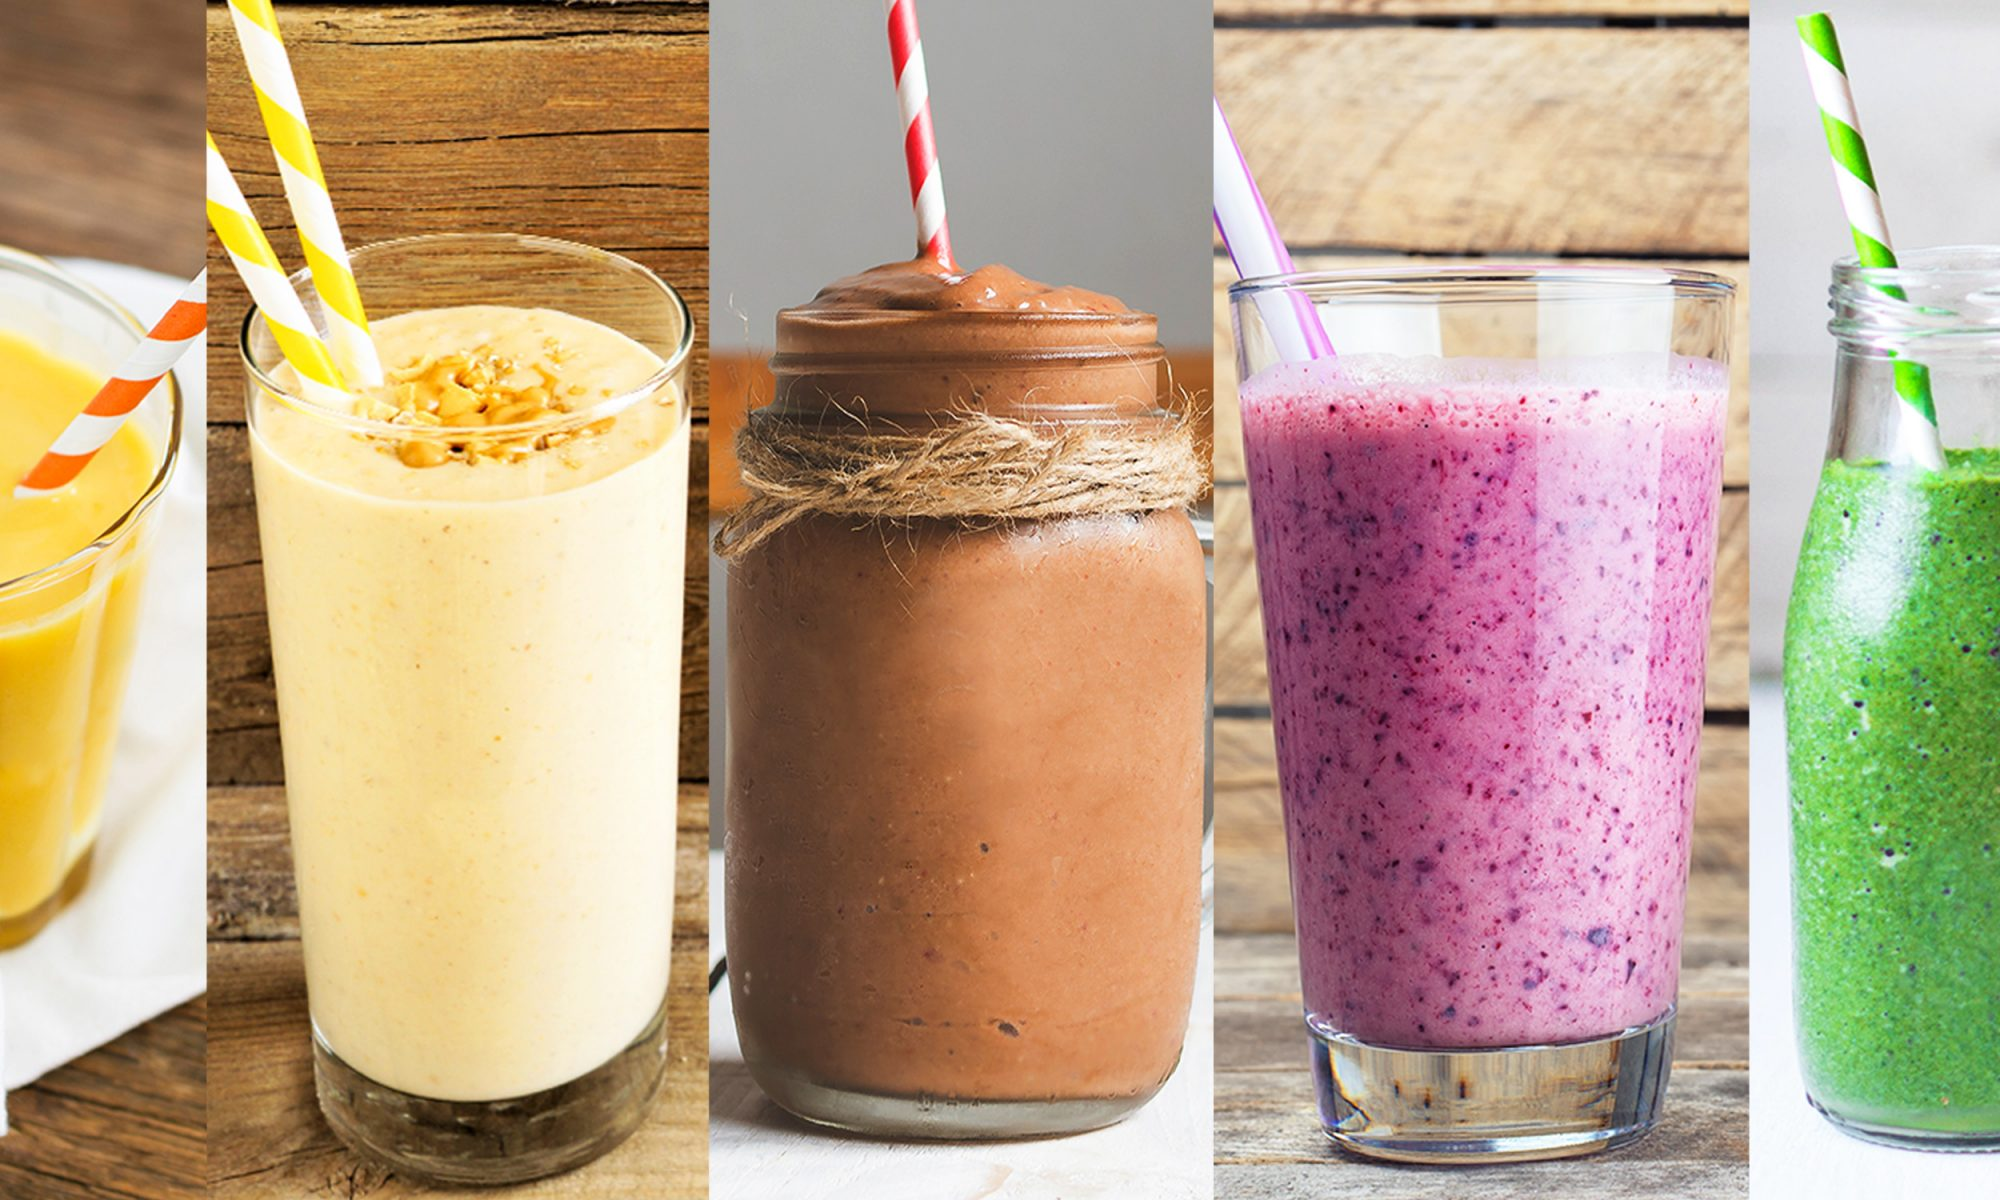 5 Easy Smoothie Recipes with Only 5 Ingredients